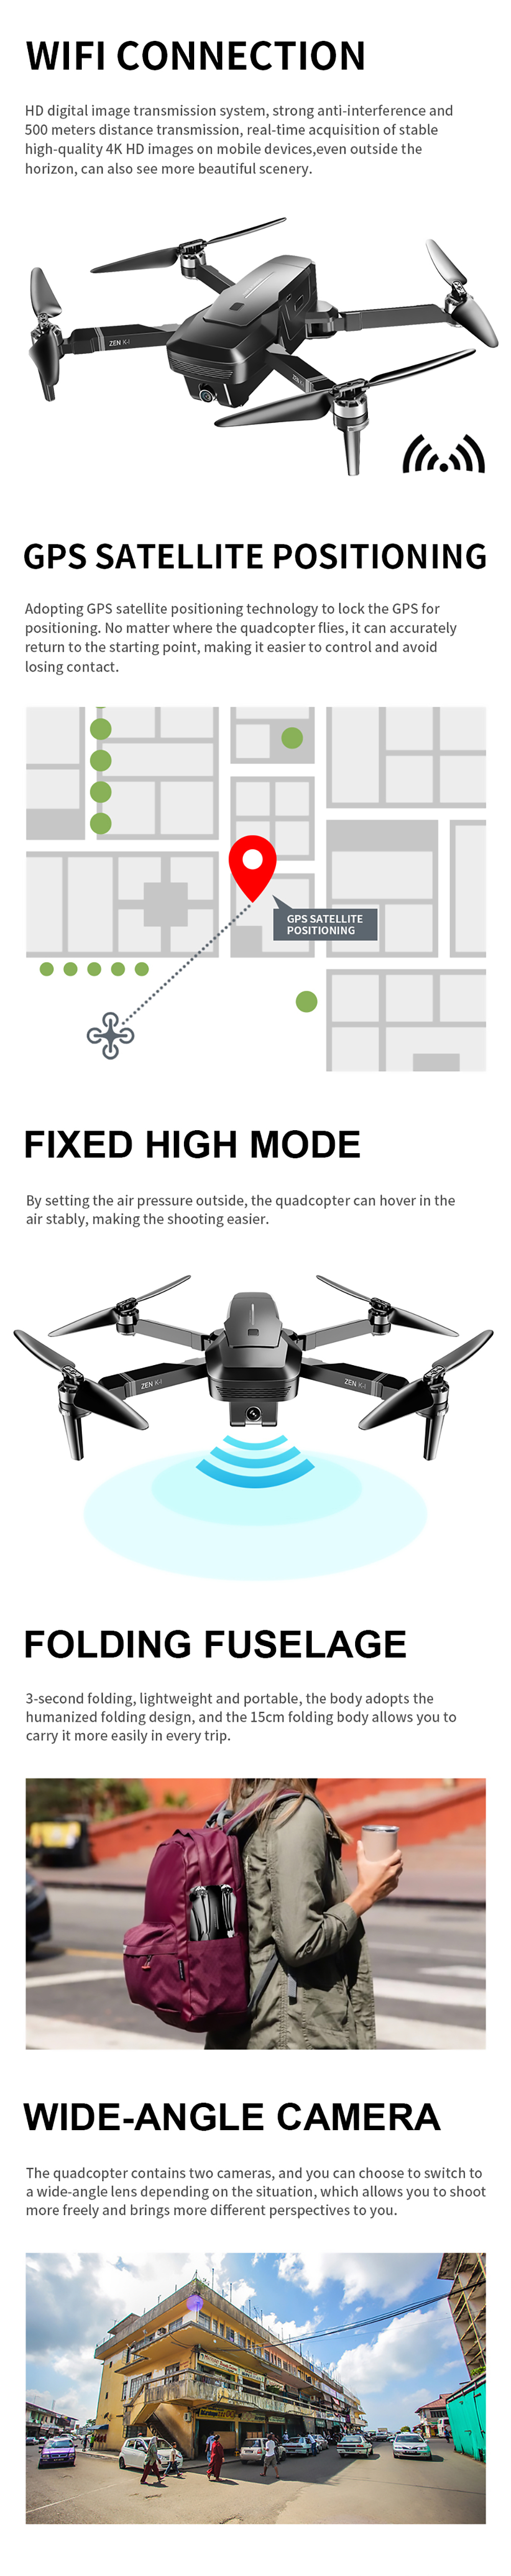 VISUO ZEN K1 5G WIFI FPV GPS With 4K HD Dual Camera Brushless Foldable RC Drone Quadcopter - Photo: 2